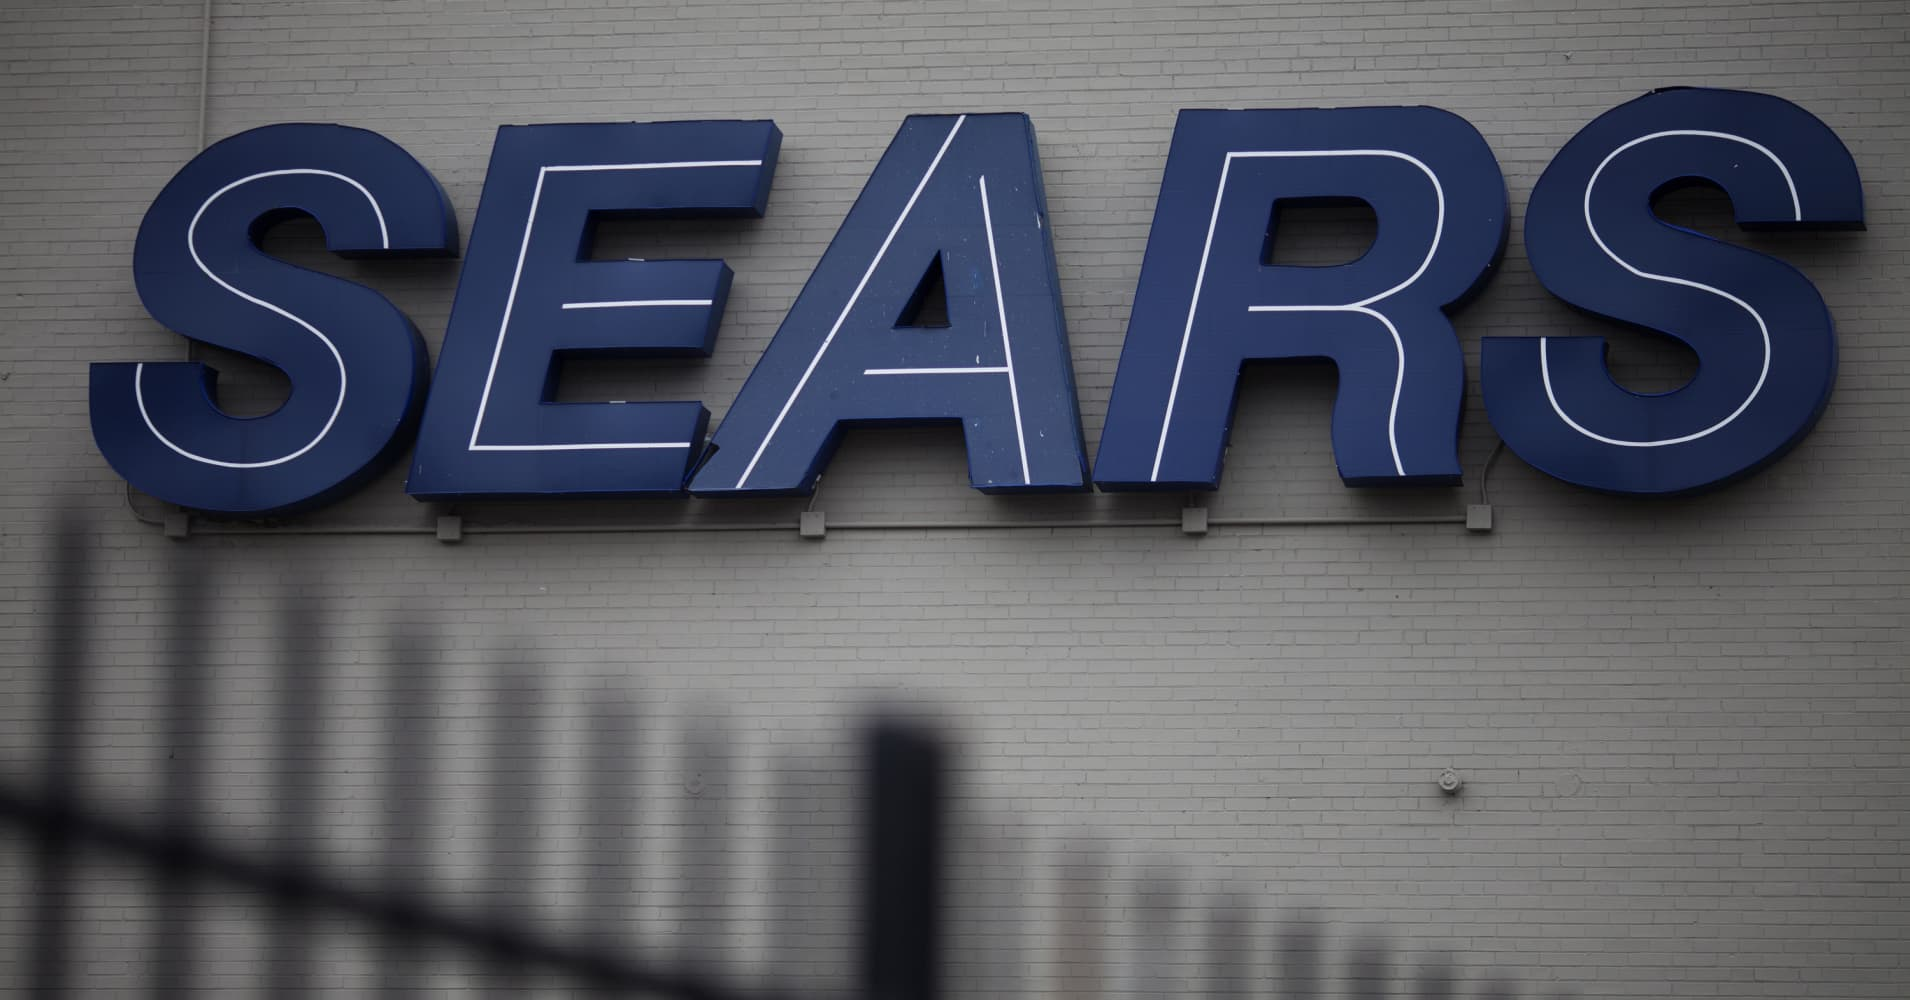 Sears was 'toast' ever since its 2005 Kmart merger, says former Sears Canada CEO